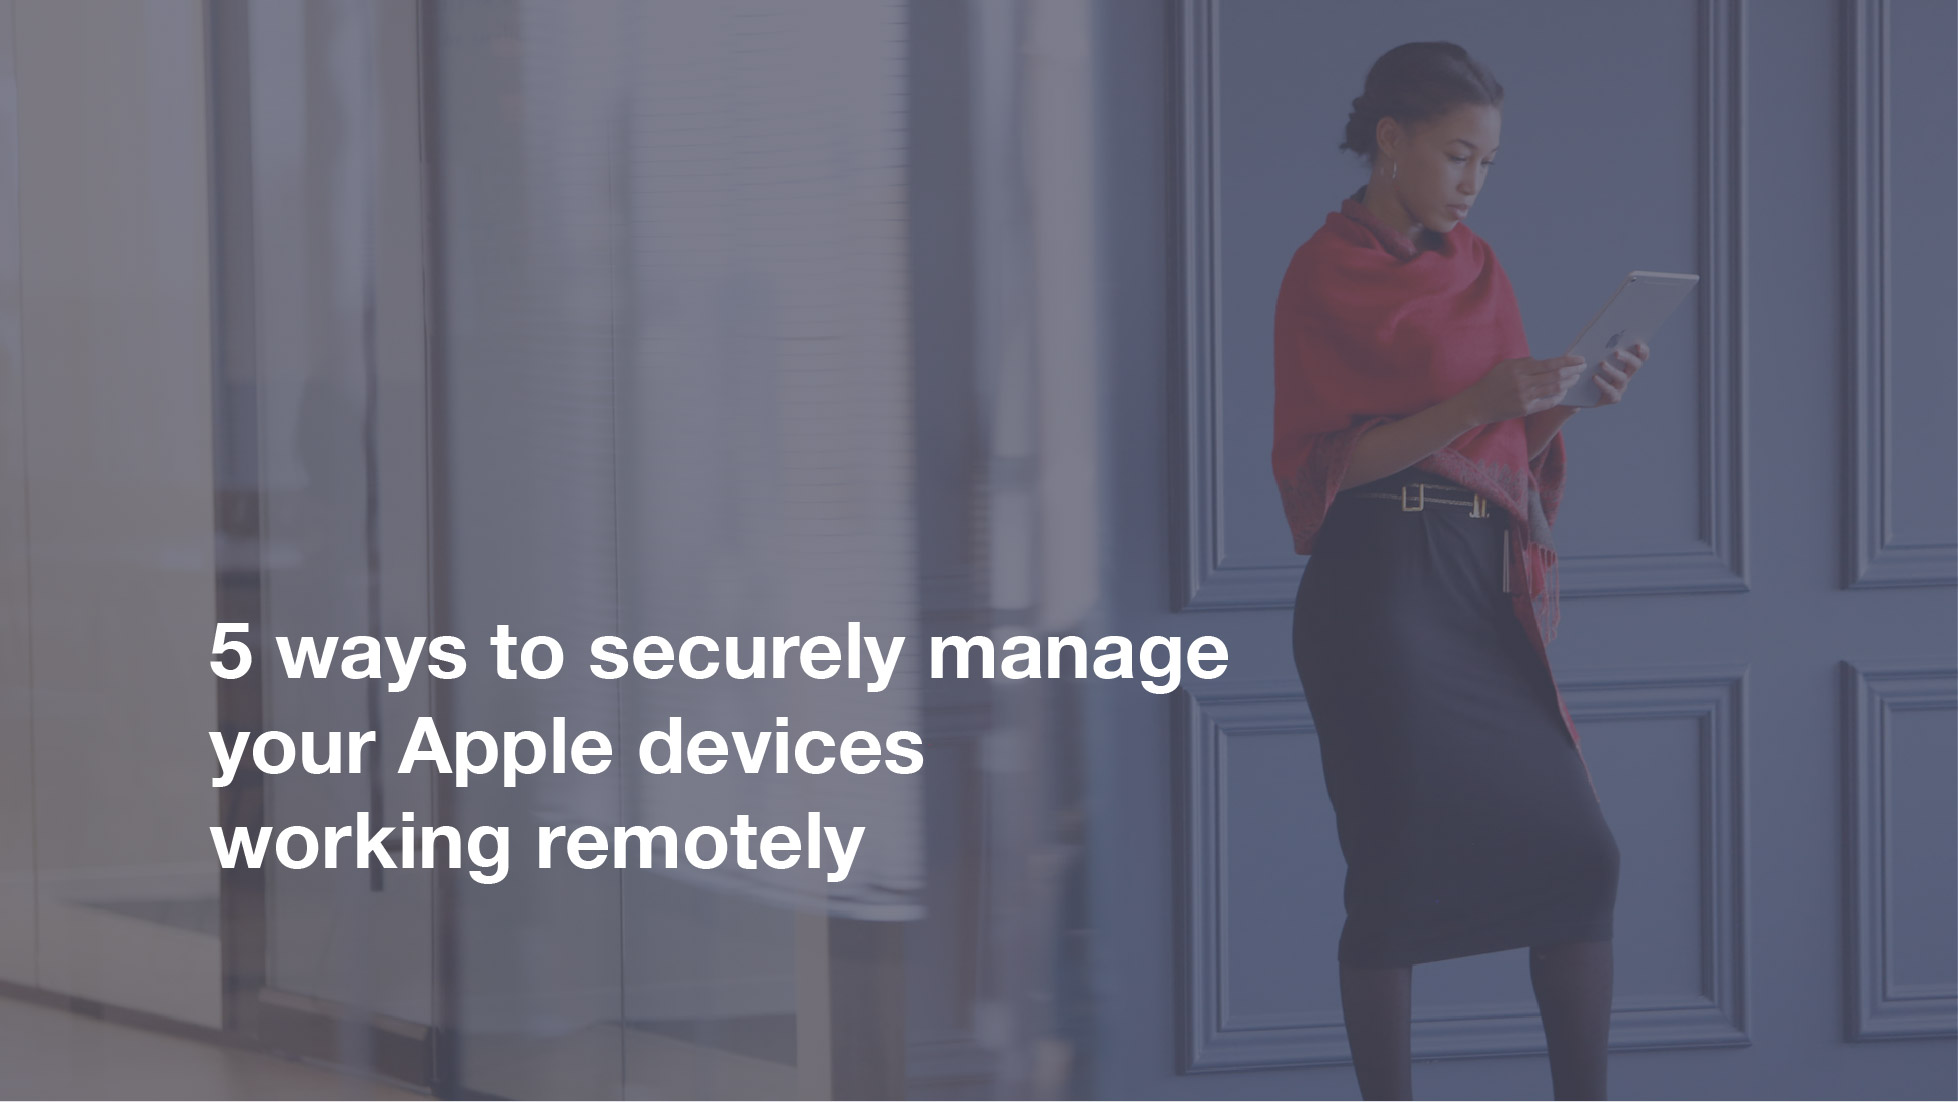 Manage Apple devices